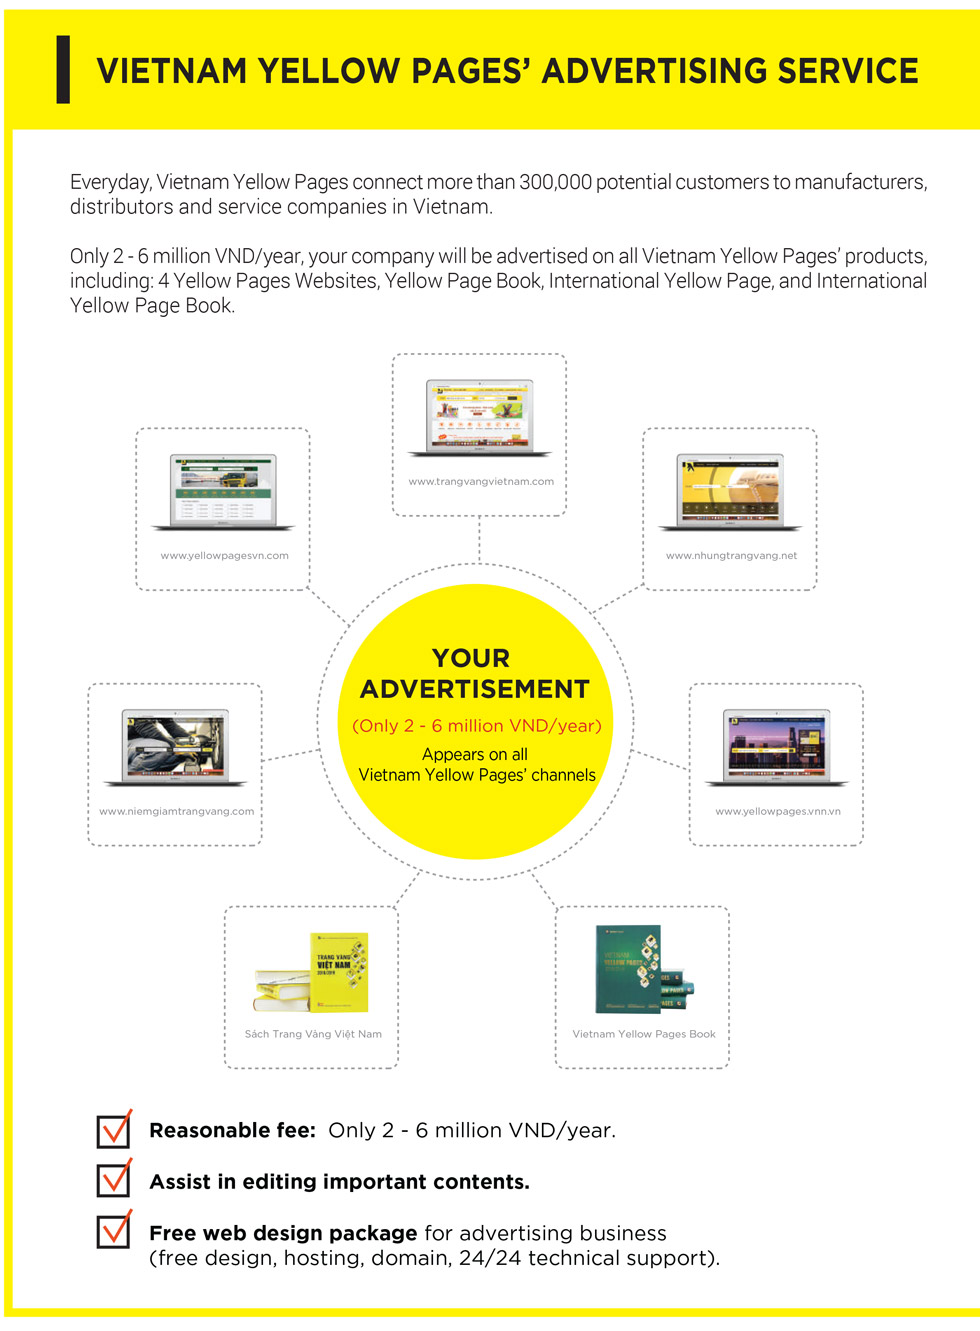 About Us | Vietnam Yellow Pages - Manufacturers, Suppliers